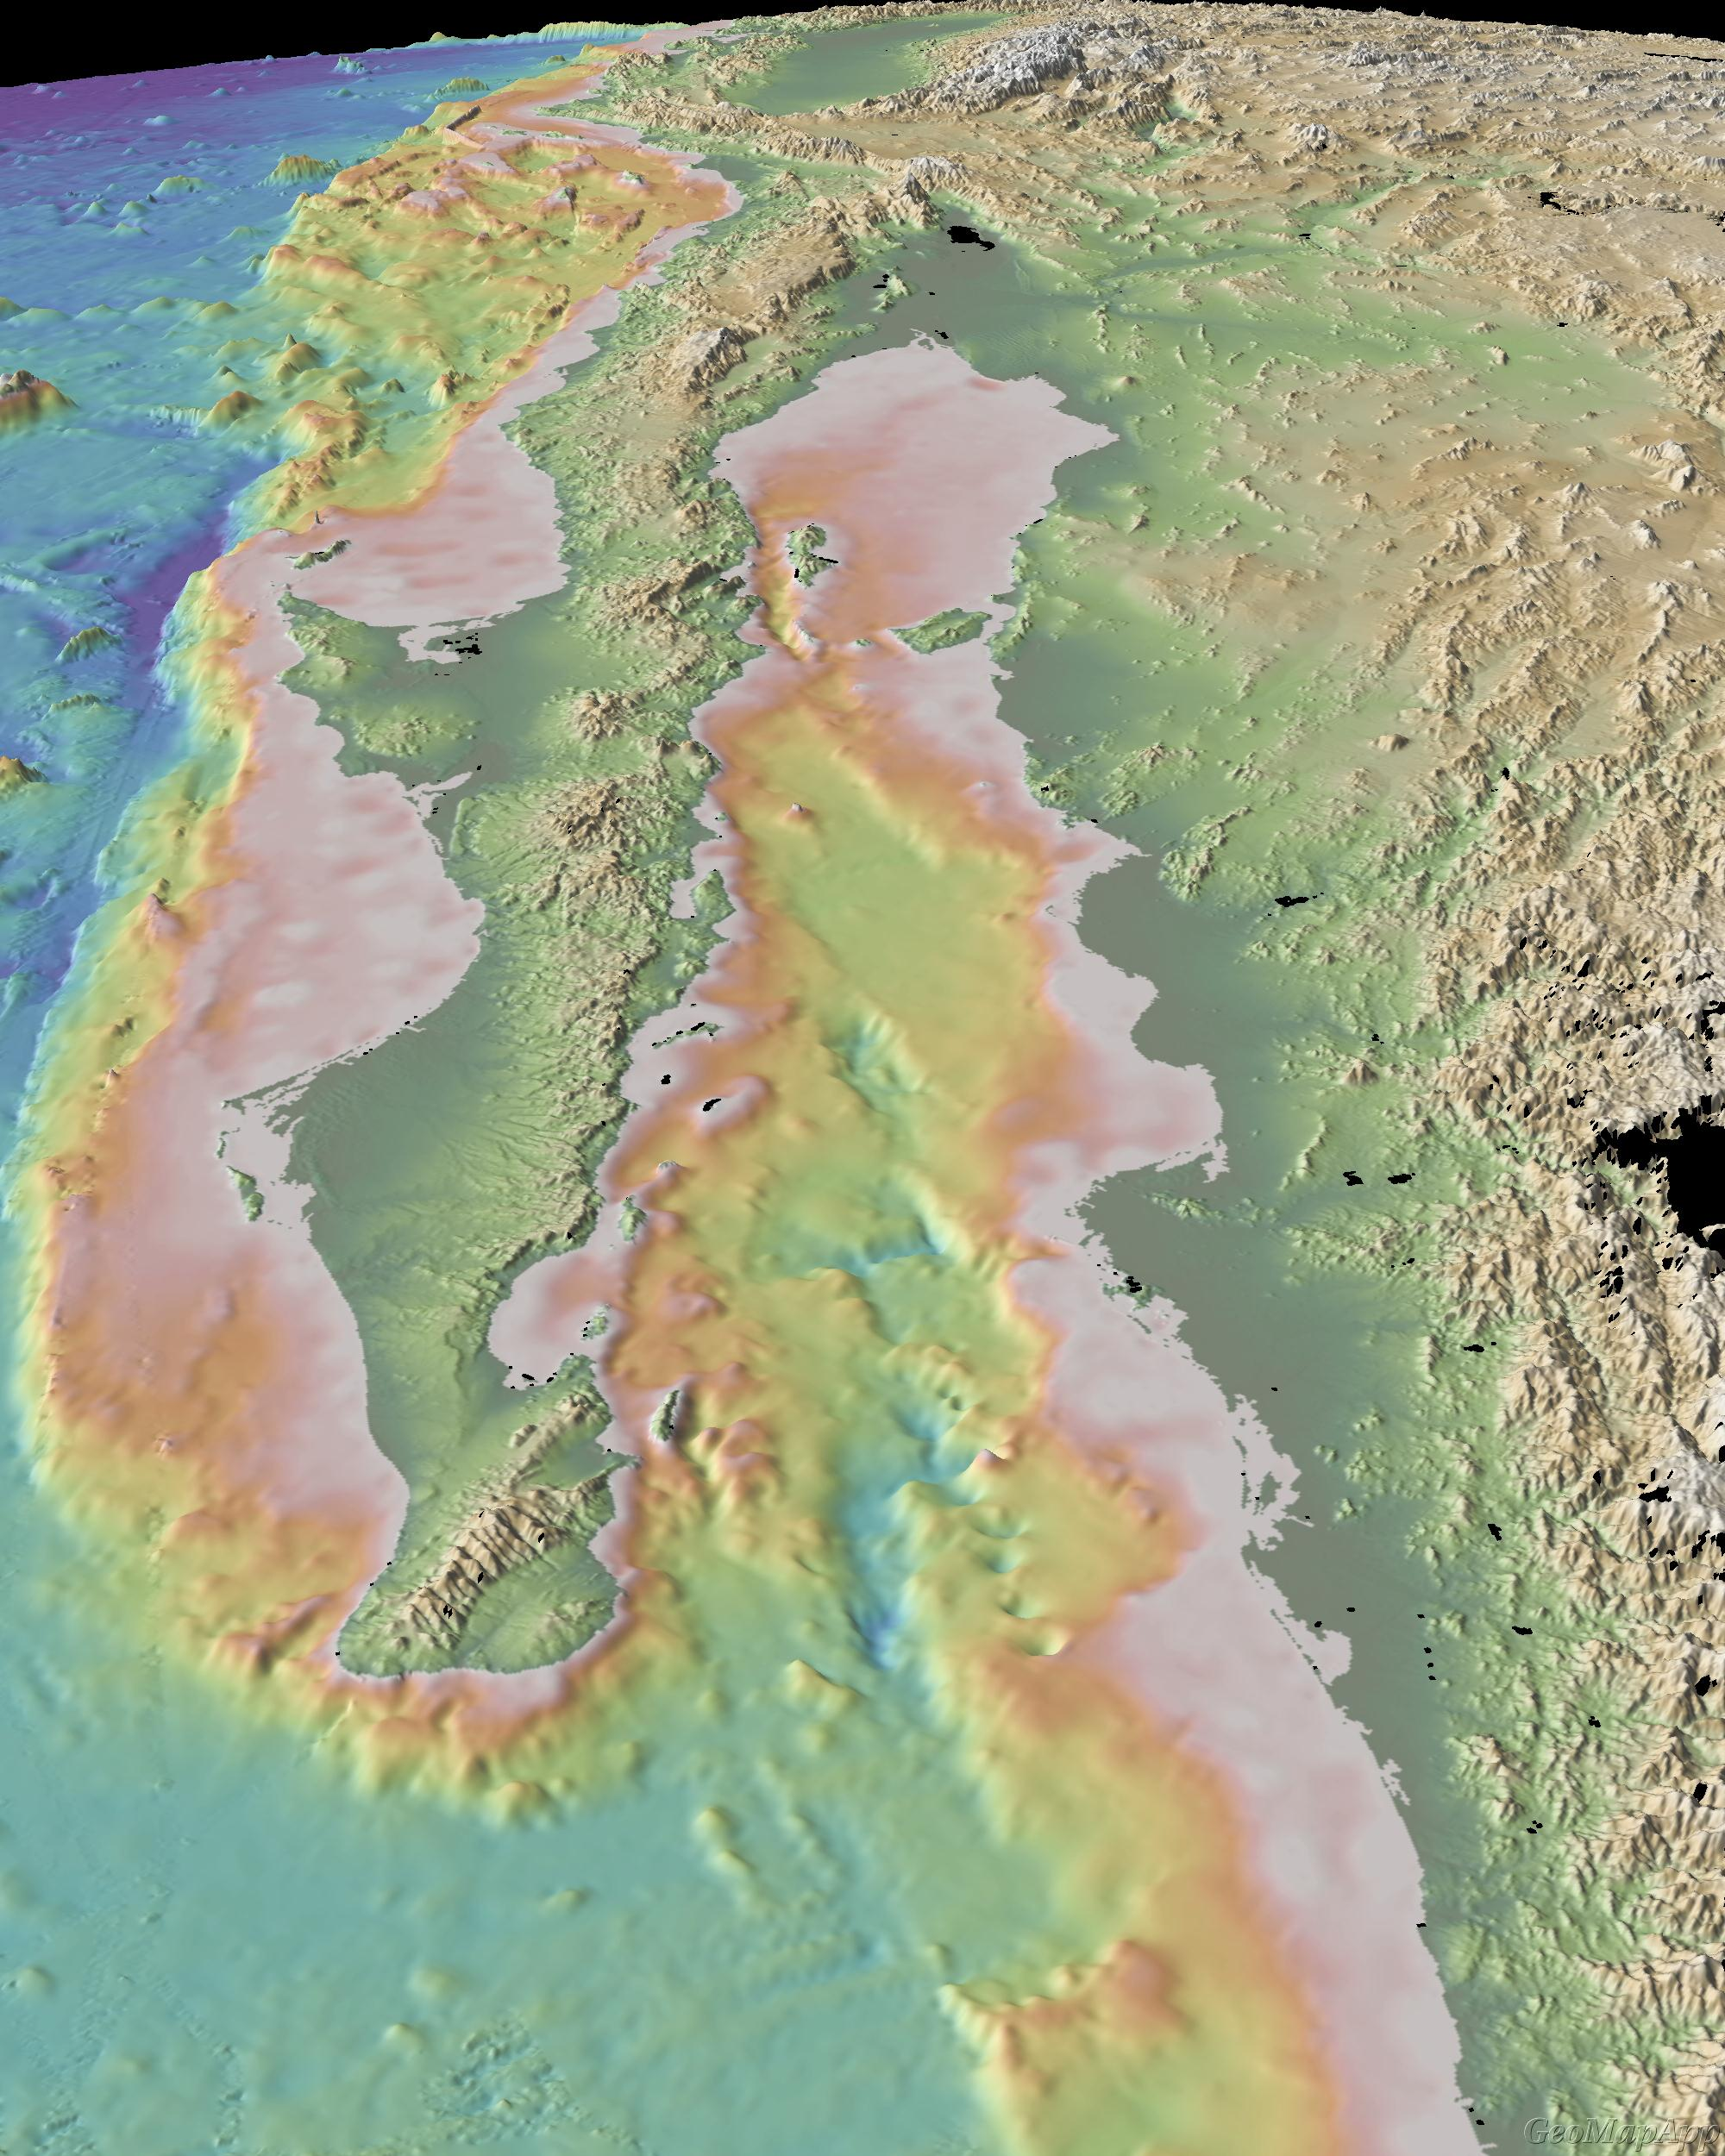 Gulf Of California Map.Sea Floor Sunday 16 Gulf Of California Clastic Detritus